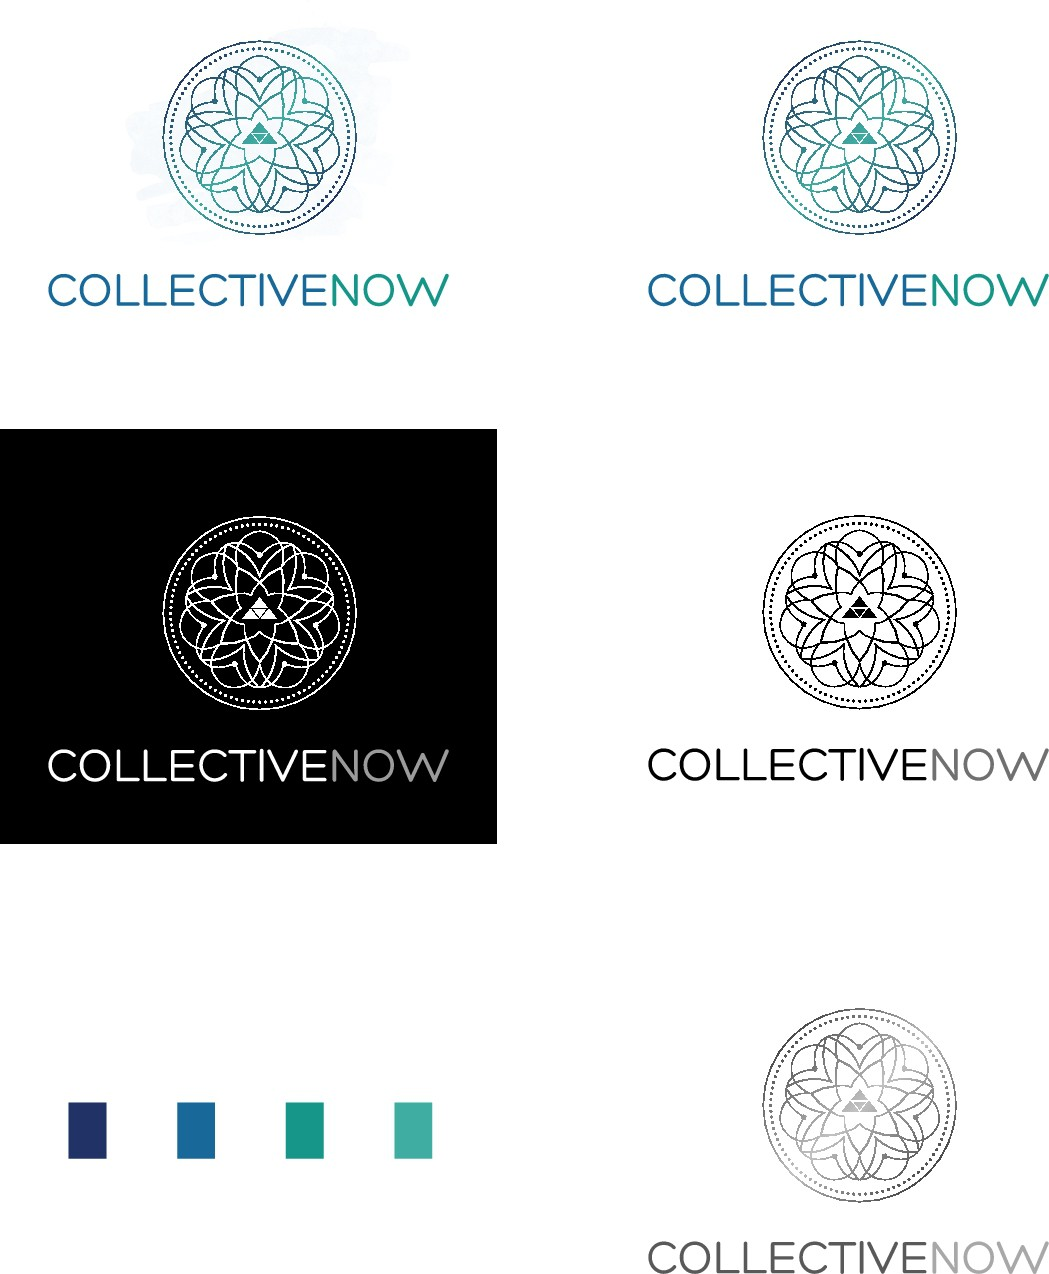 COLLECTIVE NOW